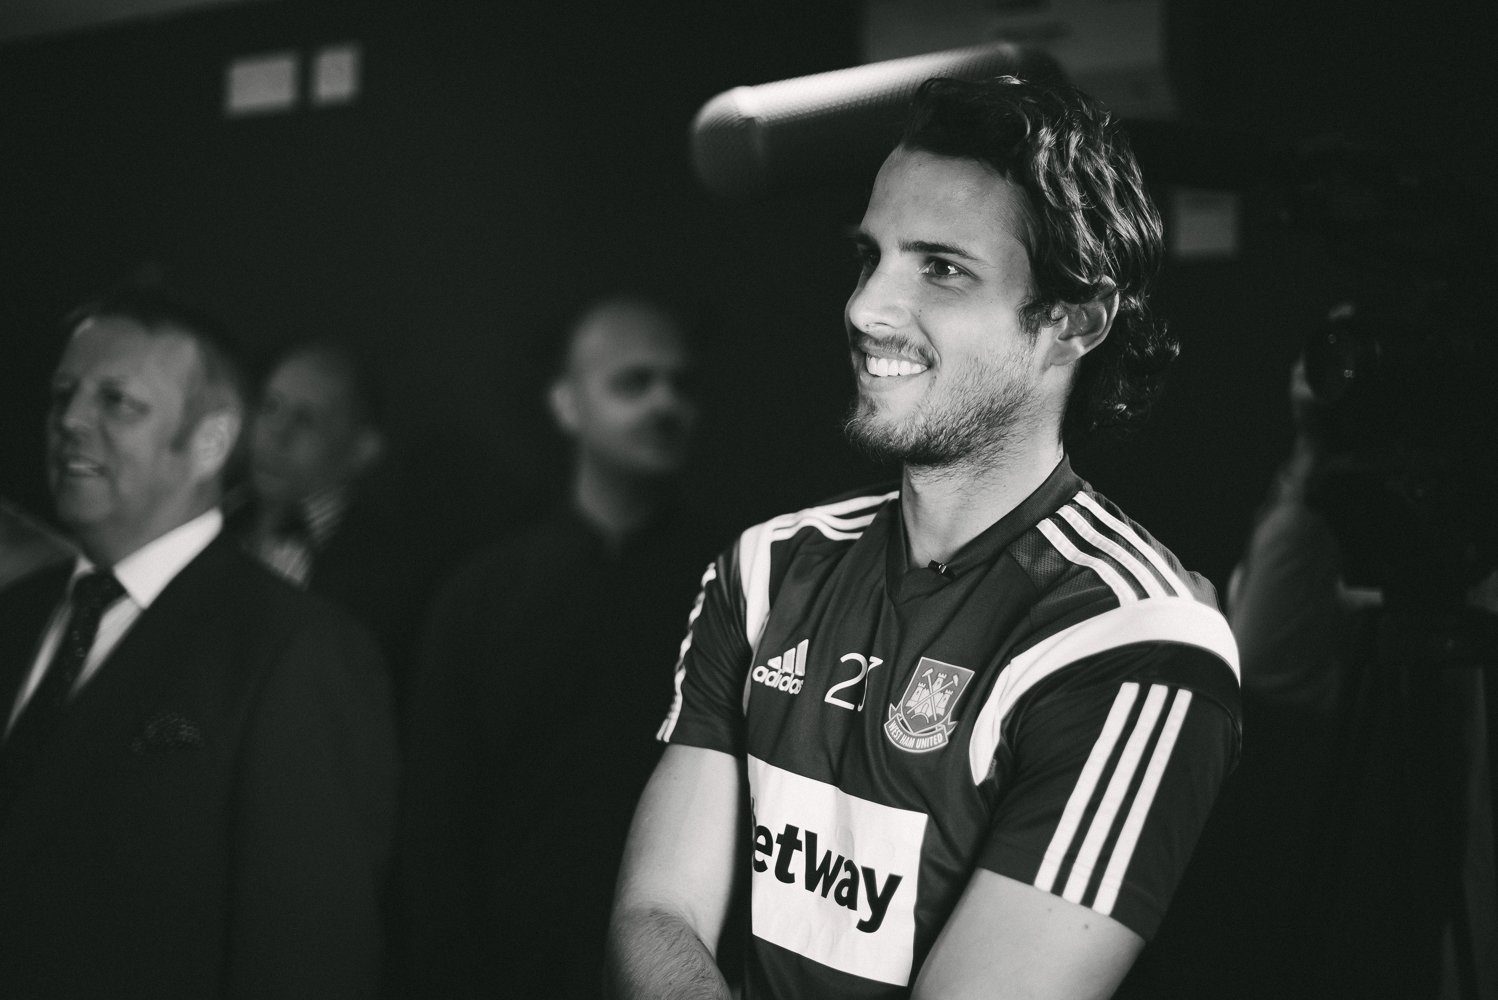 Betway_WestHam_Alex_Wallace_Photography_0136.jpg